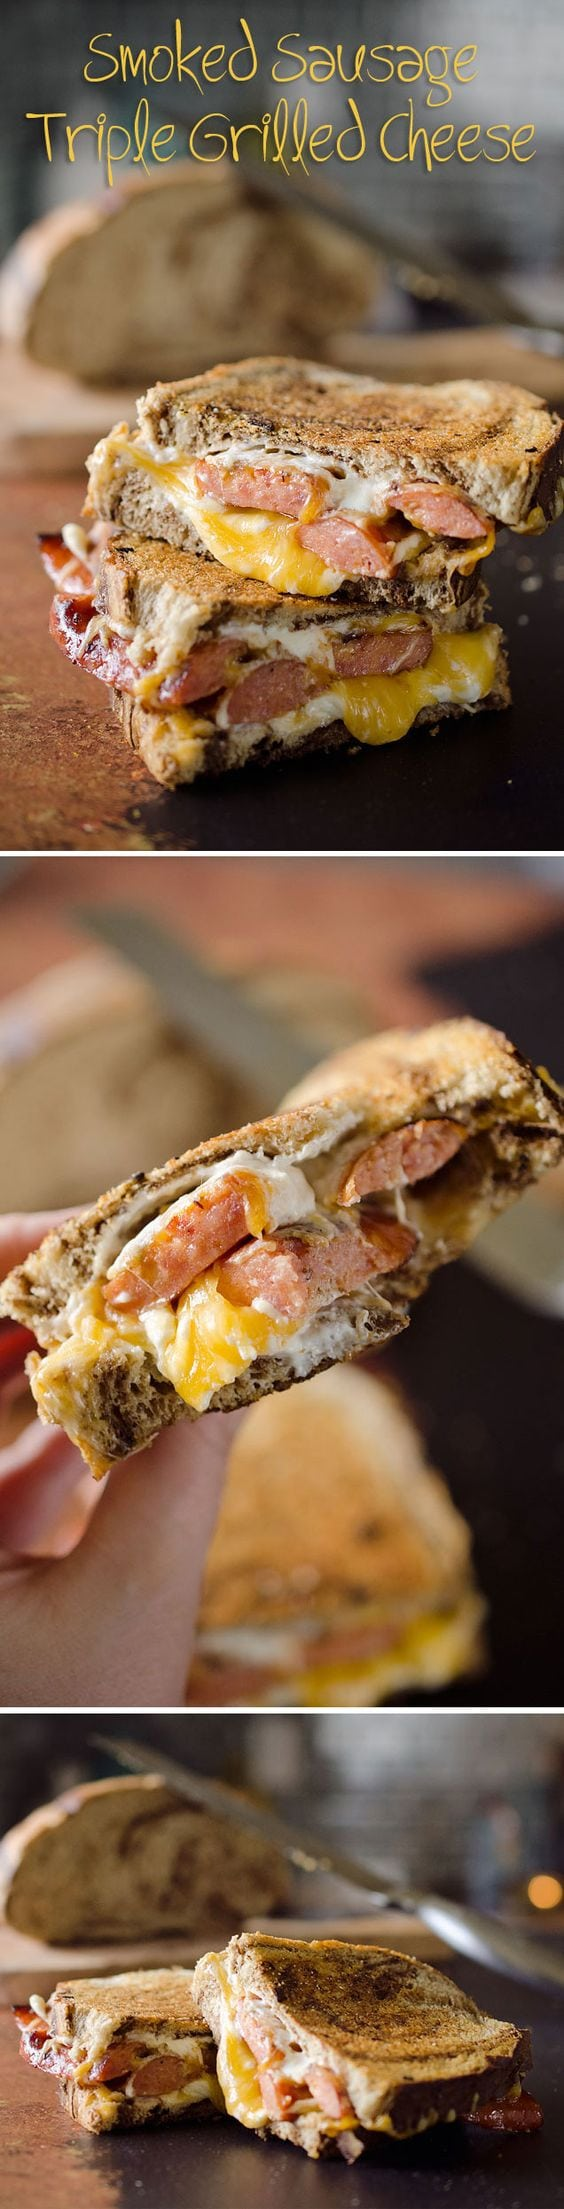 Smoked Sausage Triple Grilled Cheese